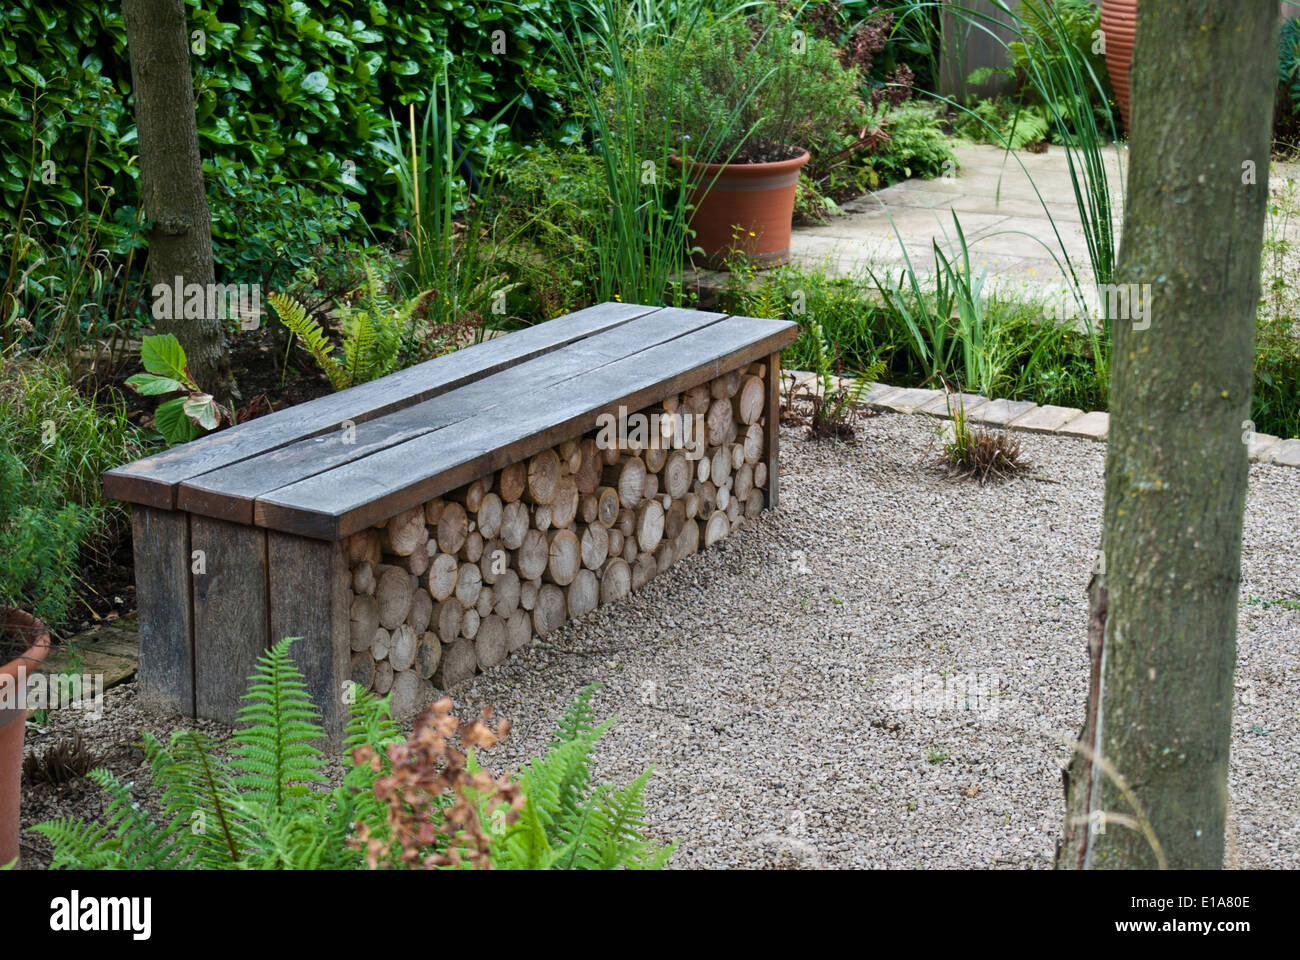 Ornate Garden Bench Doubling As A Log Store   Stock Image